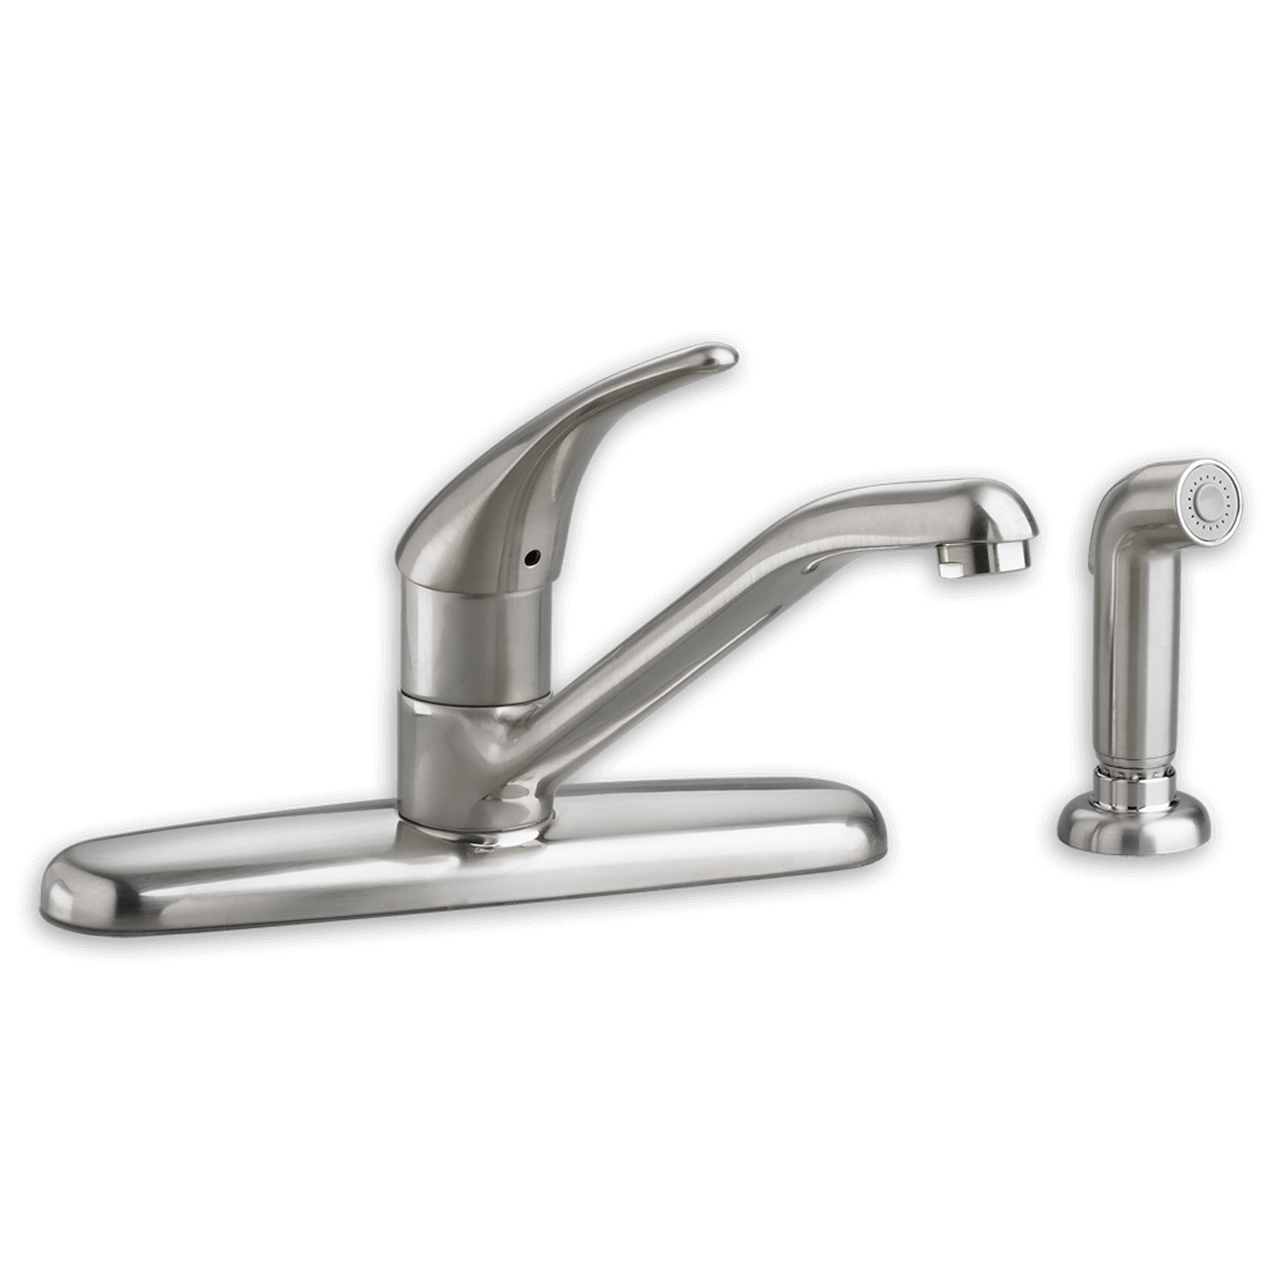 american standard kitchen faucet sears remodel colony soft 1 handle with